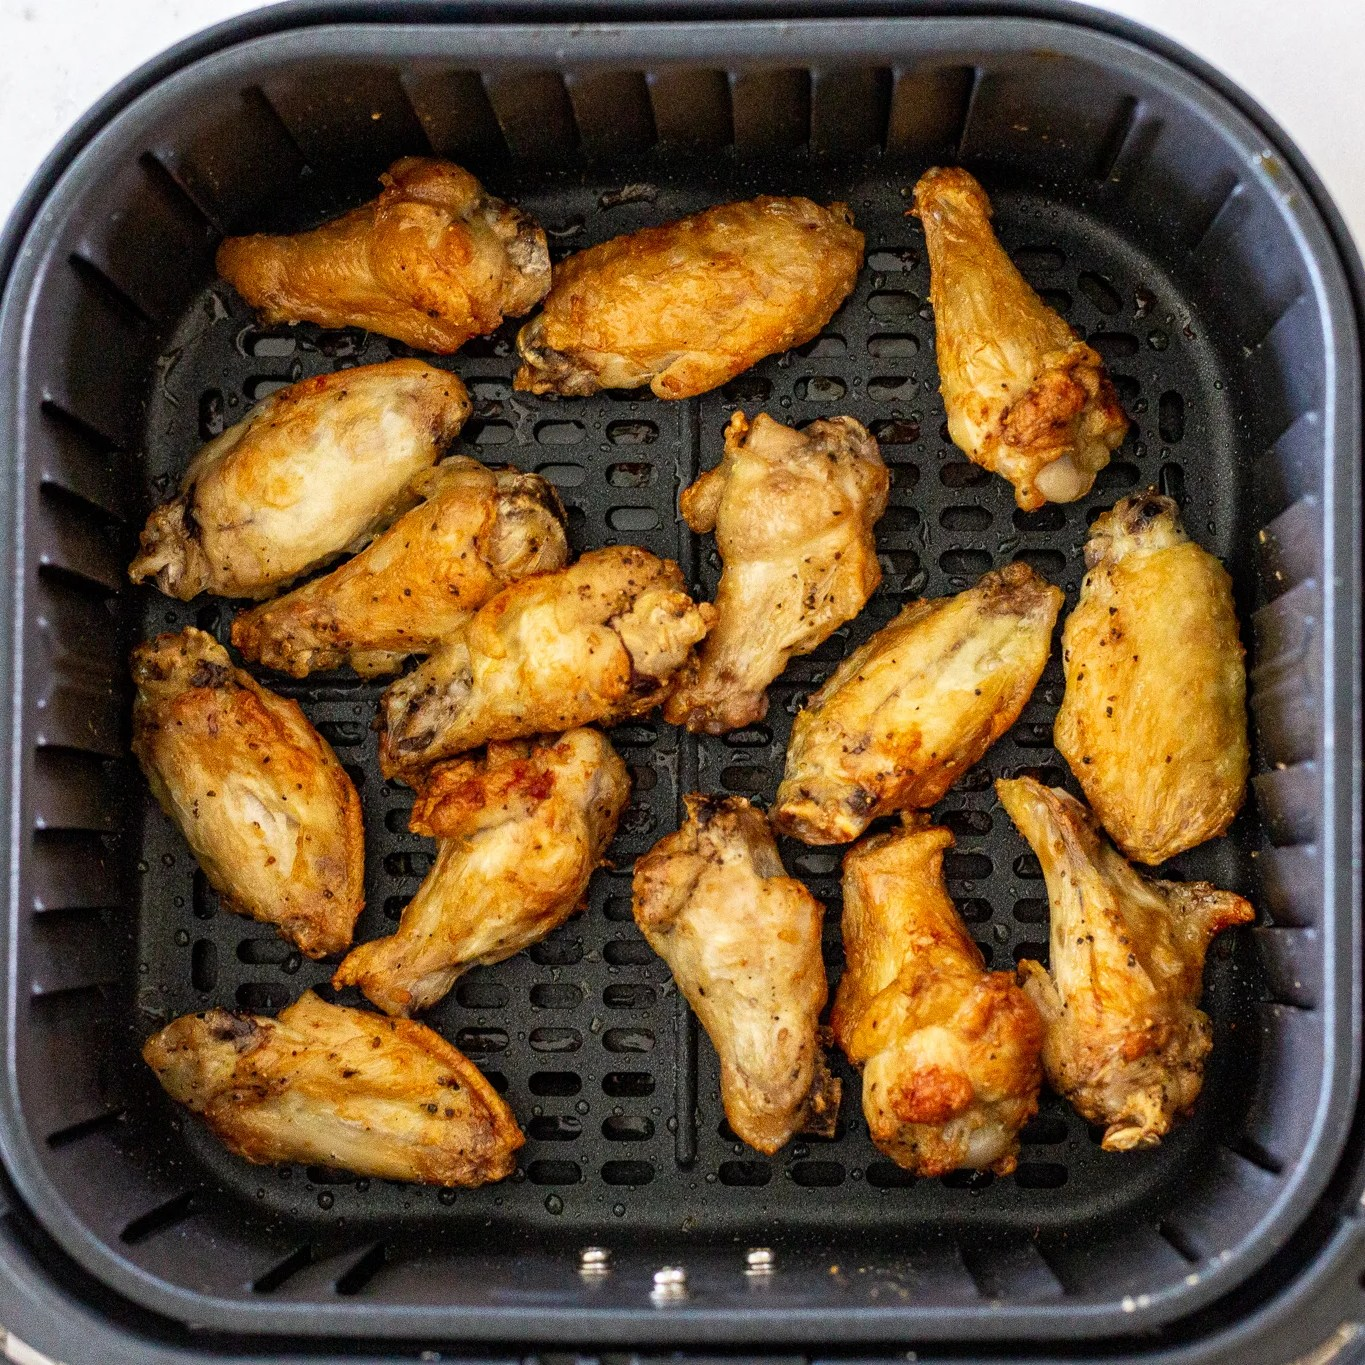 Cooked chicken wings in an air fryer basket